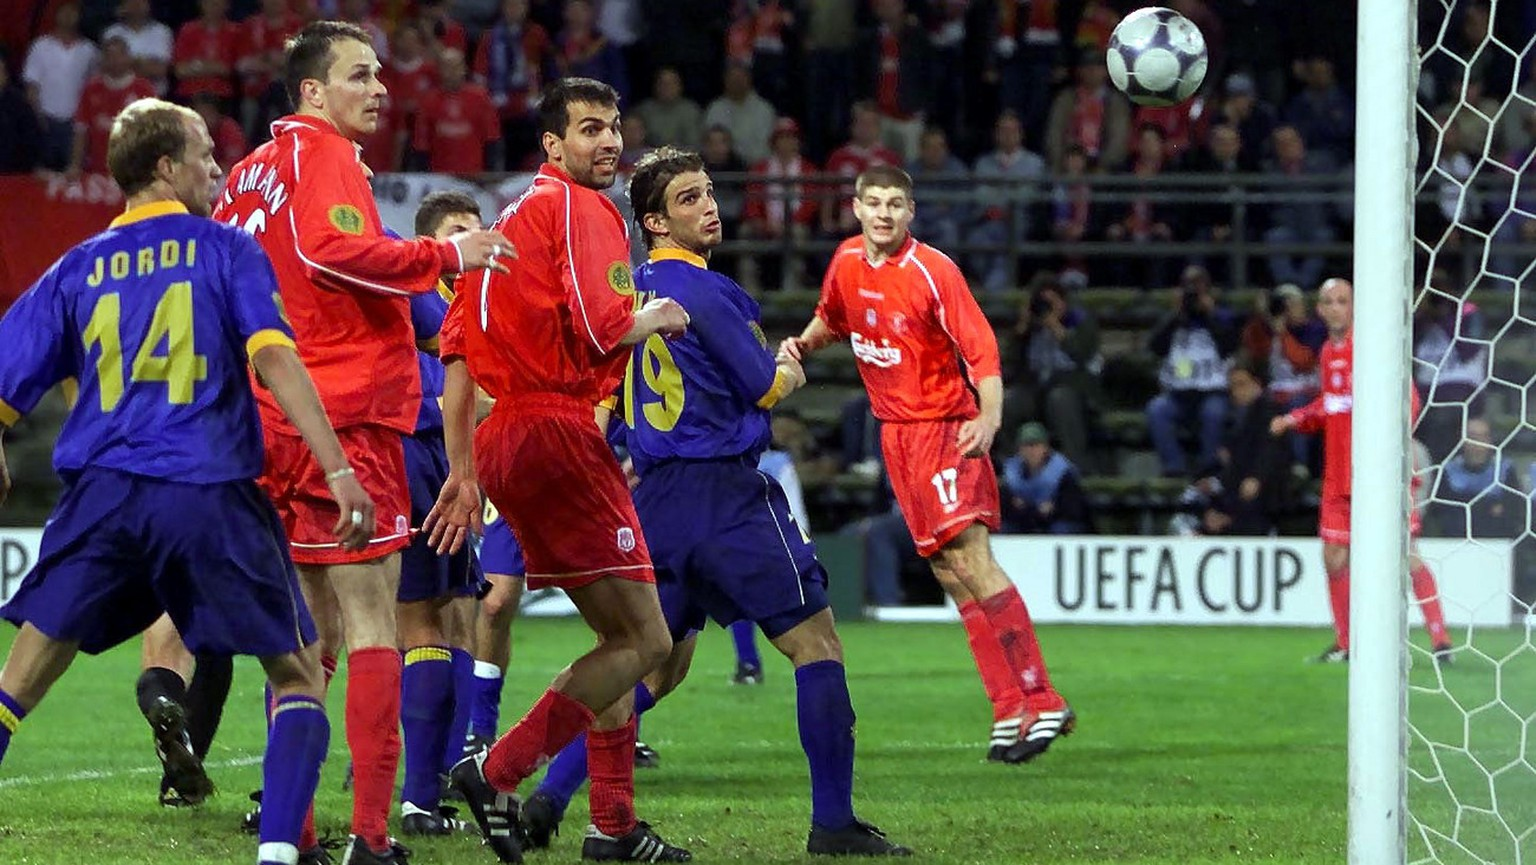 Players watch the ball go into the net, an own goal by Delfi Geli,  to give  Liverpool a 5-4  victory against Deportivo Alaves, Spain, during the UEFA Cup final in Dortmund, Germany, on Wednesday, May 16, 2001. (AP Photo/David Davies)UNITED KINGDOM OUT, , NO MAGS